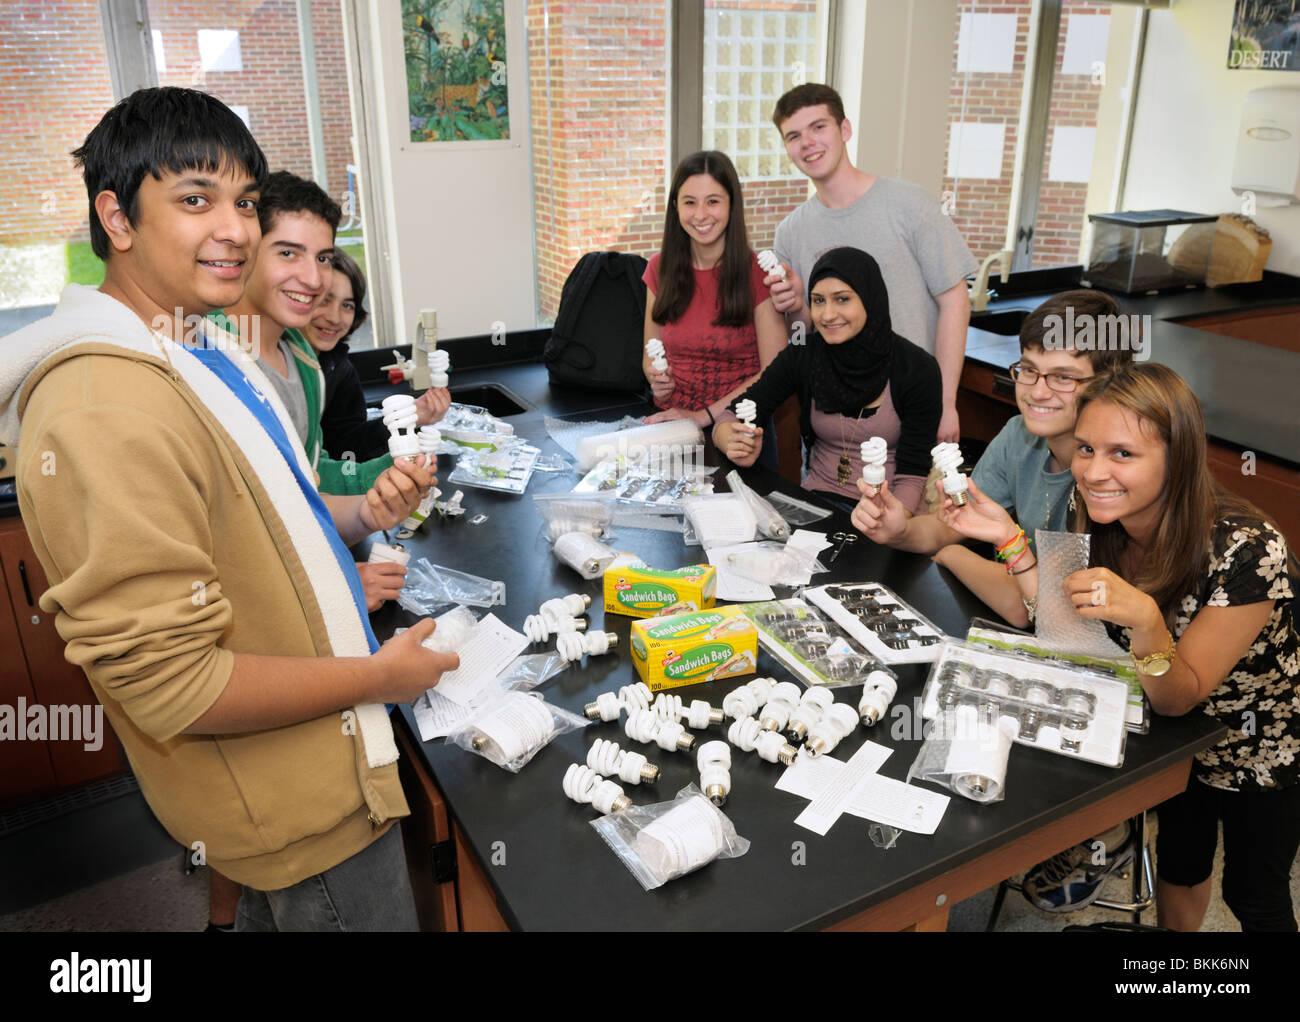 High school environmental club meeting. Students are preparing energy efficient lightbulbs to give away to the community. - Stock Image